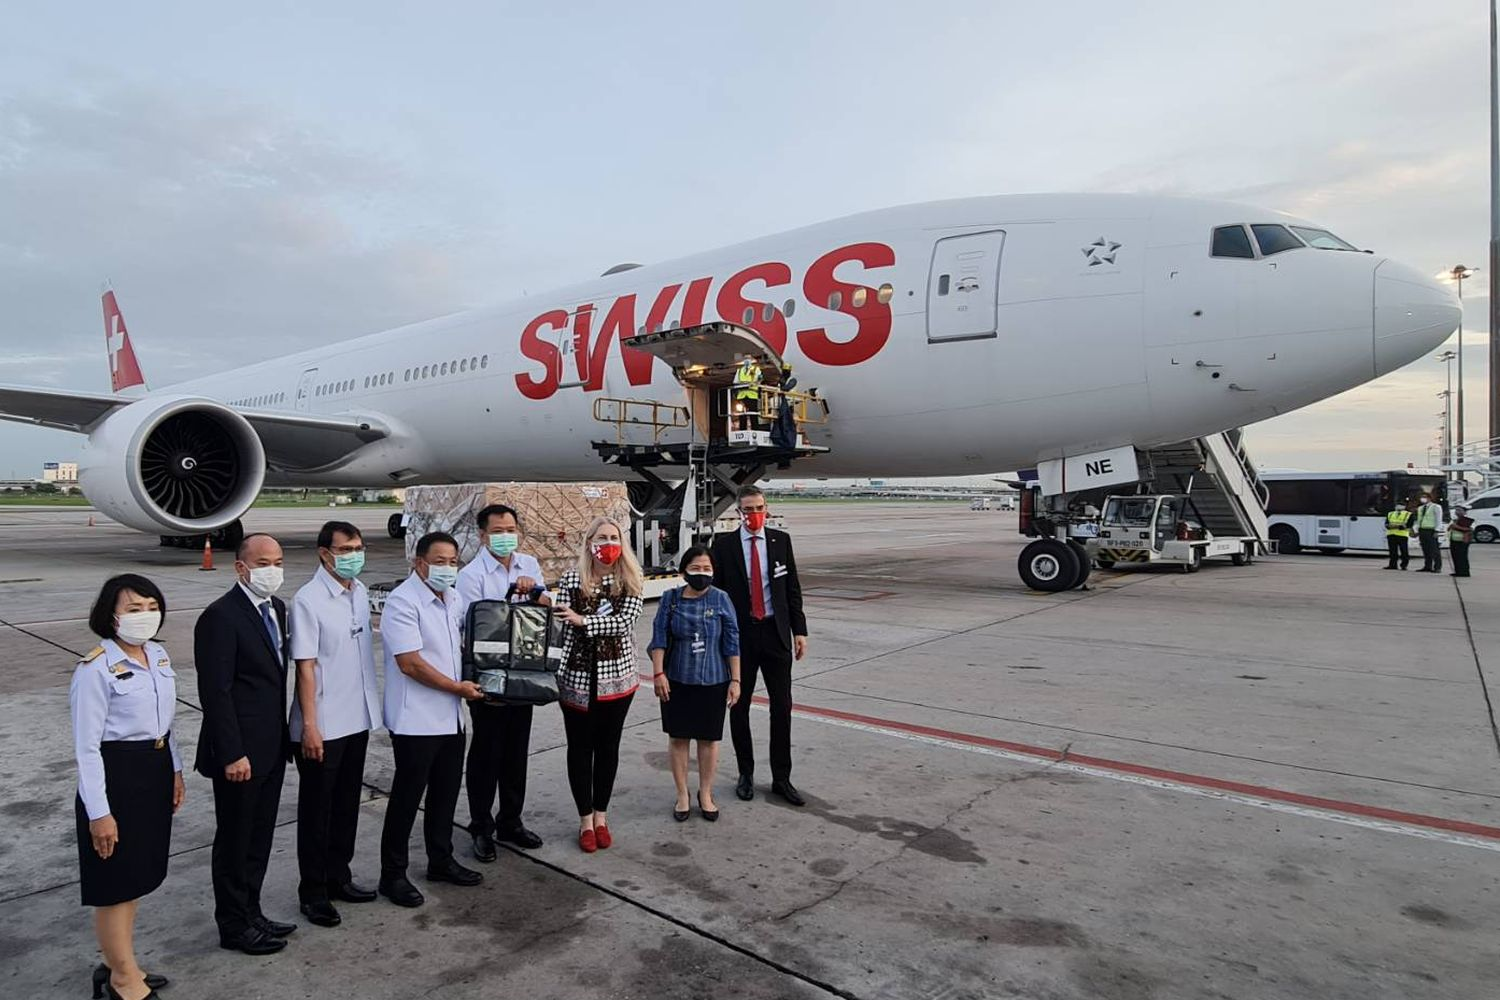 Medical supplies donated by Switzerland arrive